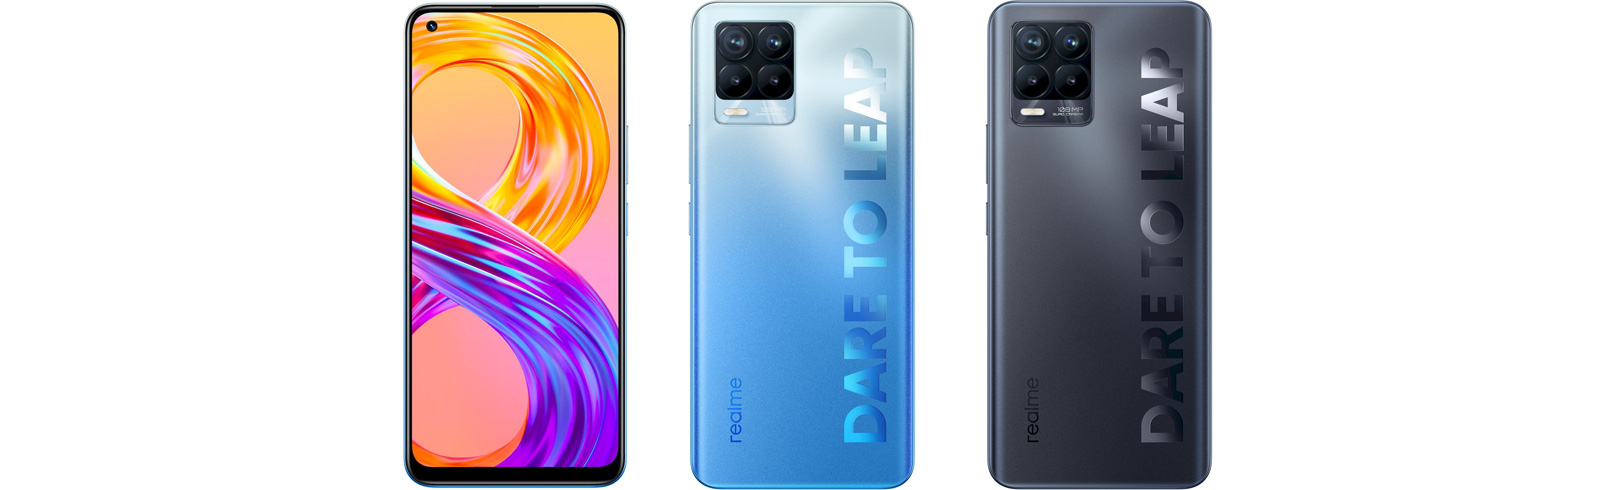 Realme 8 Pro and Realme 8 are official - specifications and prices